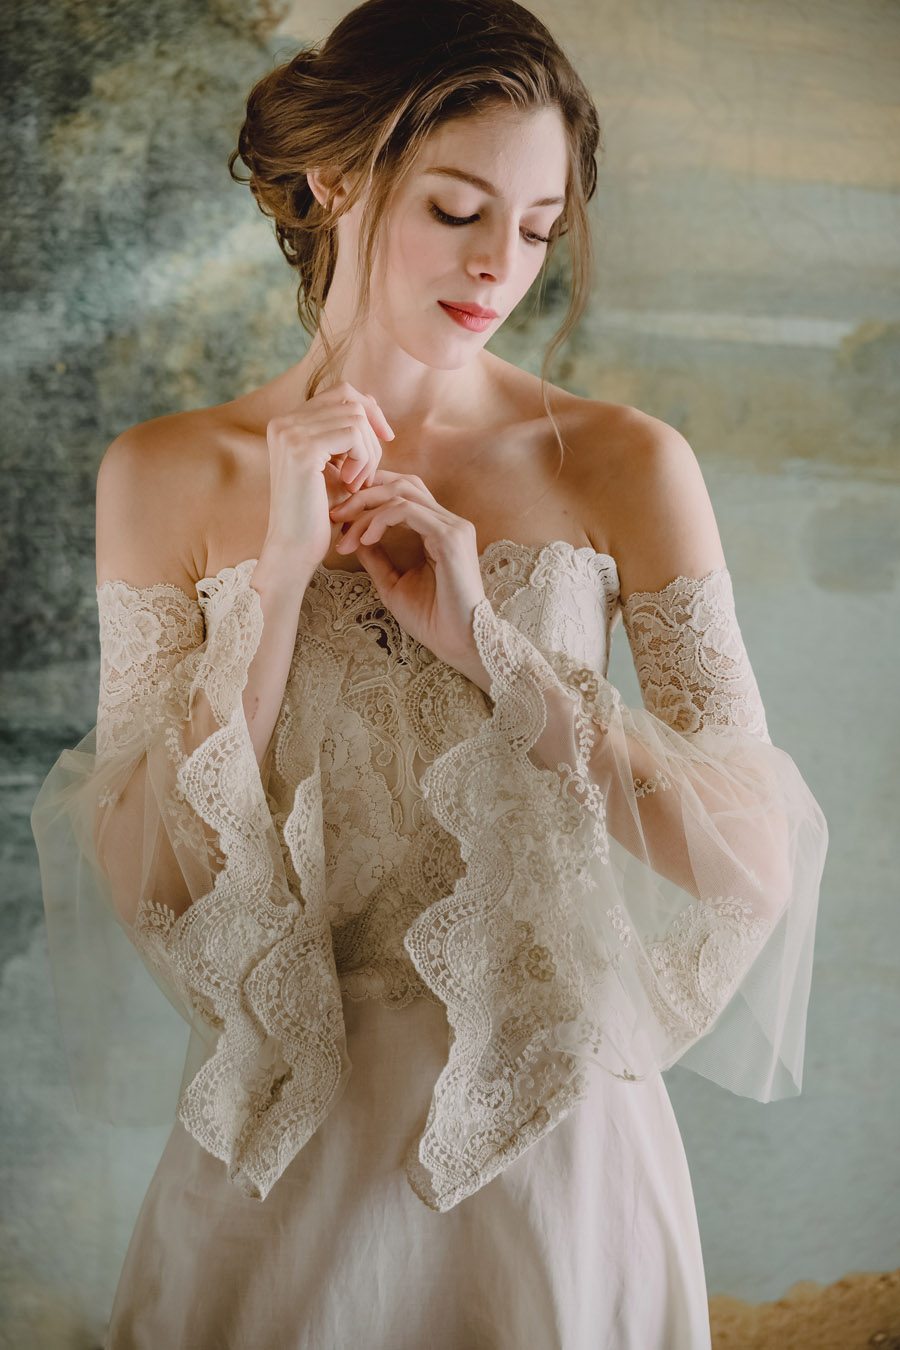 Claire Pettibone 2020 wedding dress ideas (11)